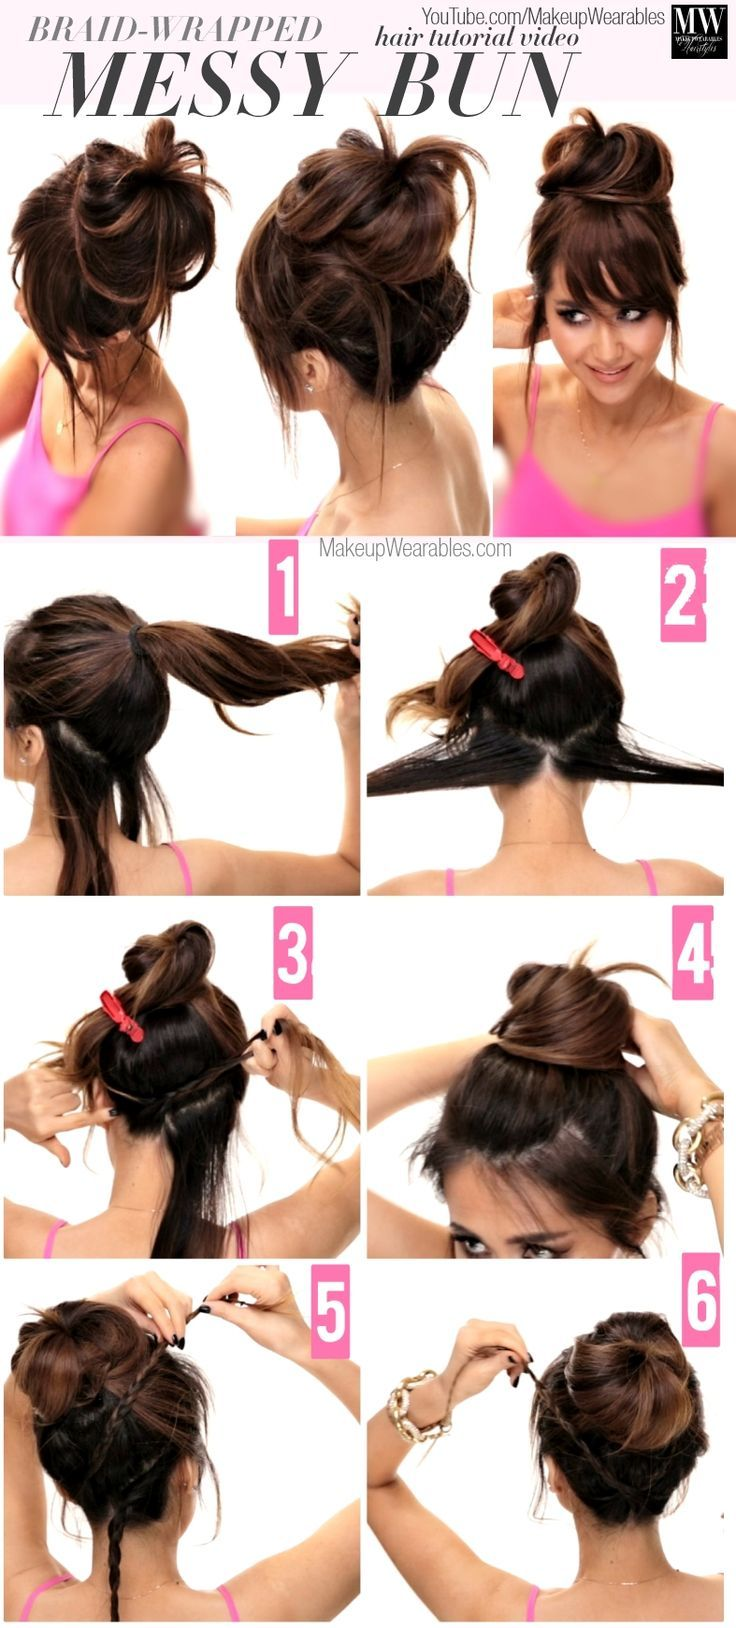 How to Lazy Girl's Messy #Bun #Hairstyles | #hair tutorial #hair #hairdo #hairstyles #hairstylesforlonghair #hairtips #tutorial #DIY #stepbystep #longhair #howto #practical #guide #everydayhairstyle #easyhairstyle #idea #inspiration #style